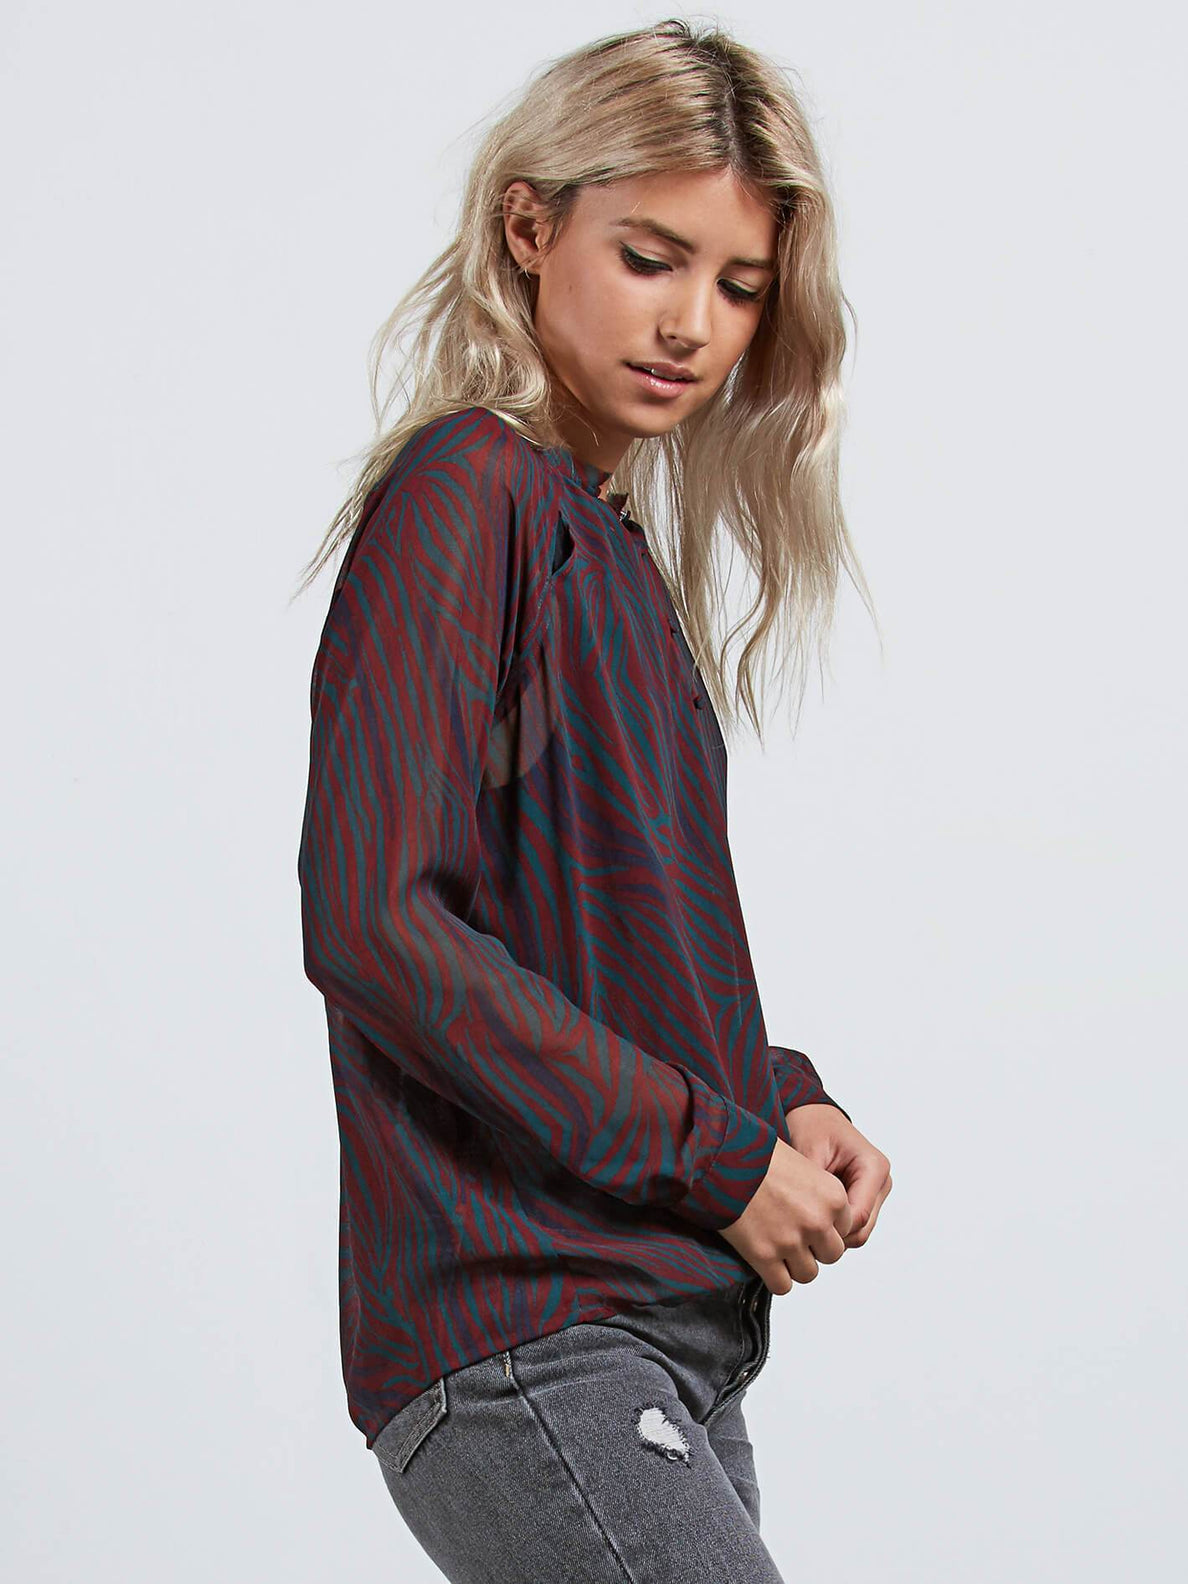 Zebom Top Shirt - Burgundy